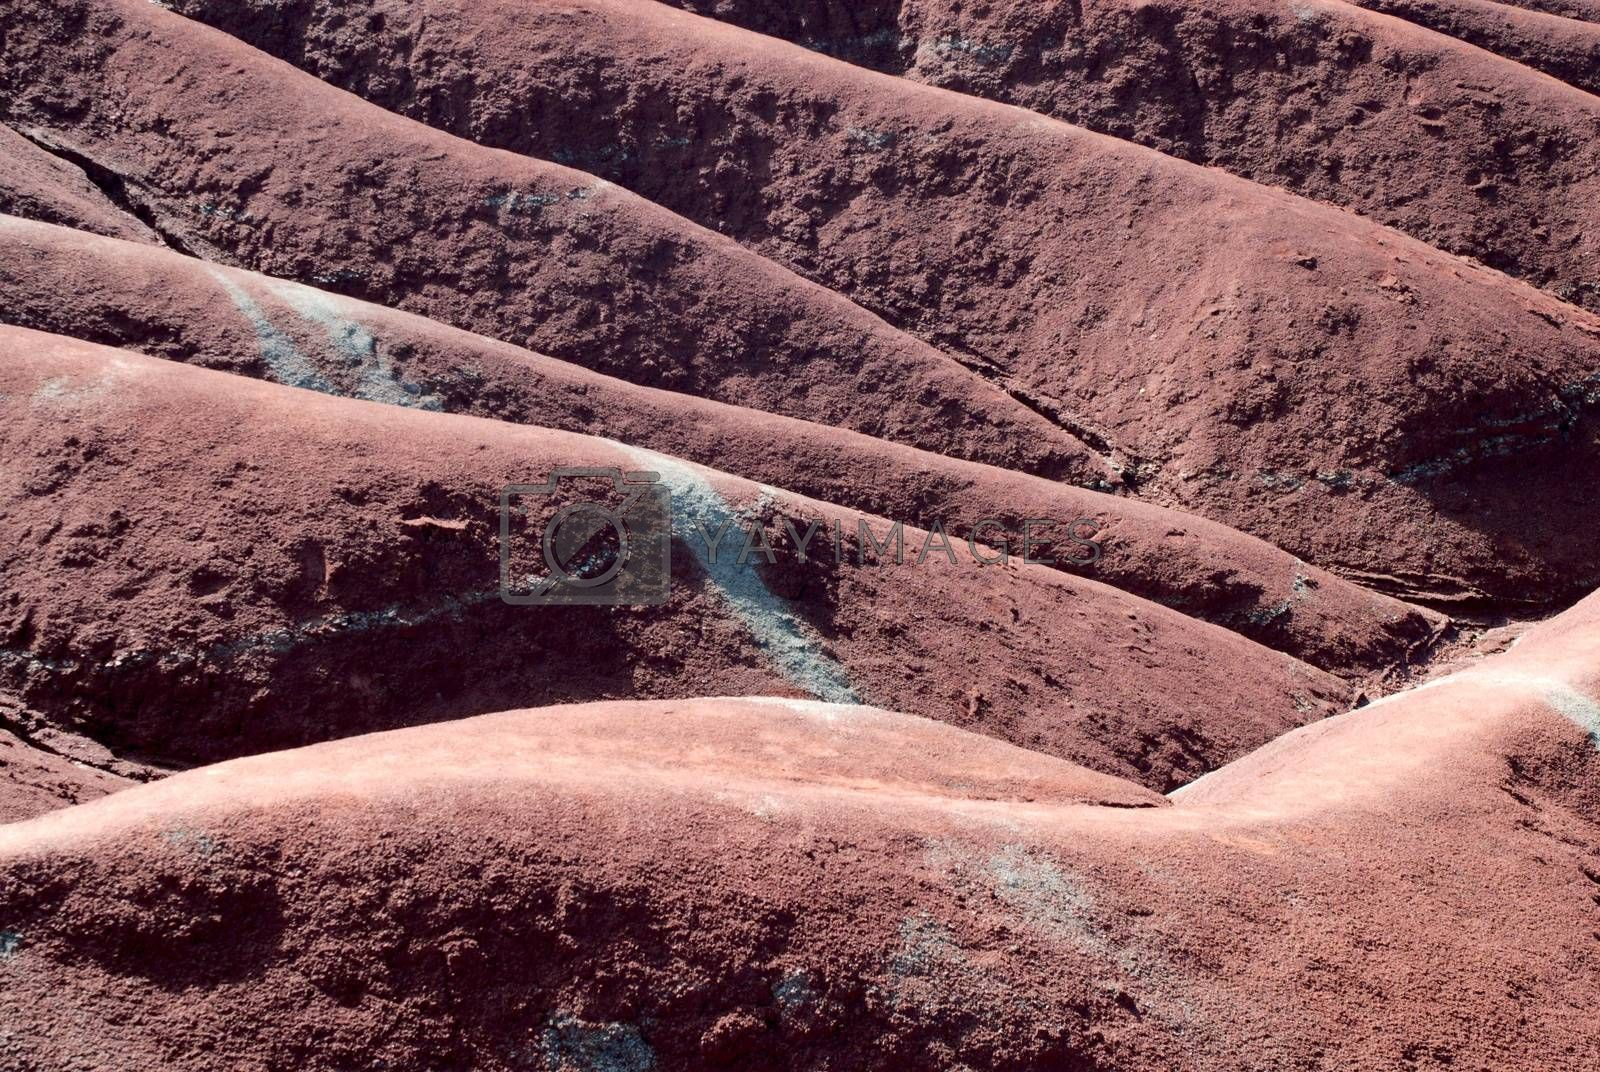 Red sedimentary clay badlands dunes background texture.